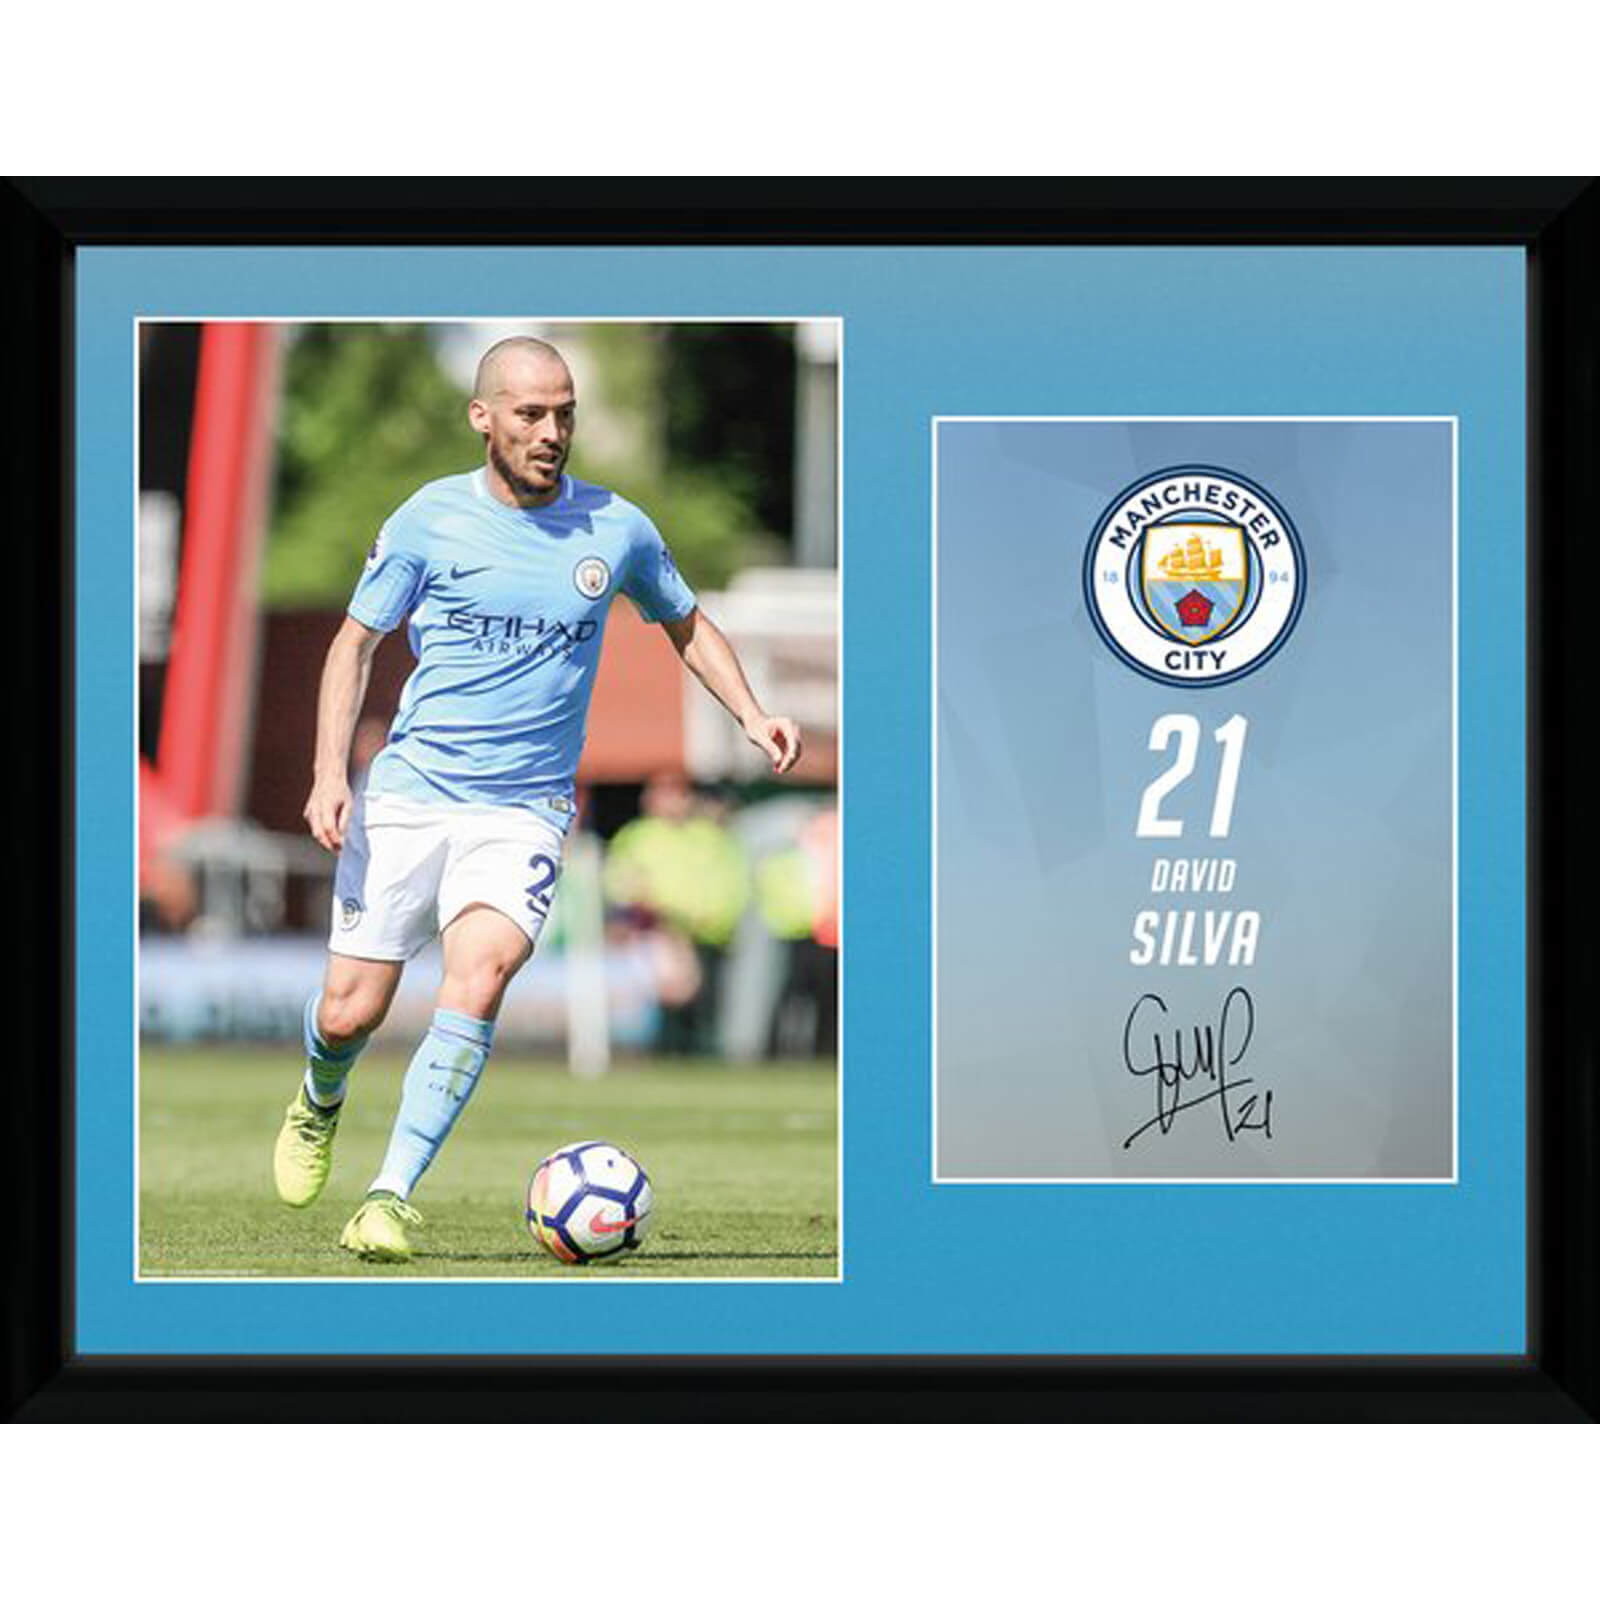 Manchester City Silva 17/18 12 x 16 Inches Framed Photograph